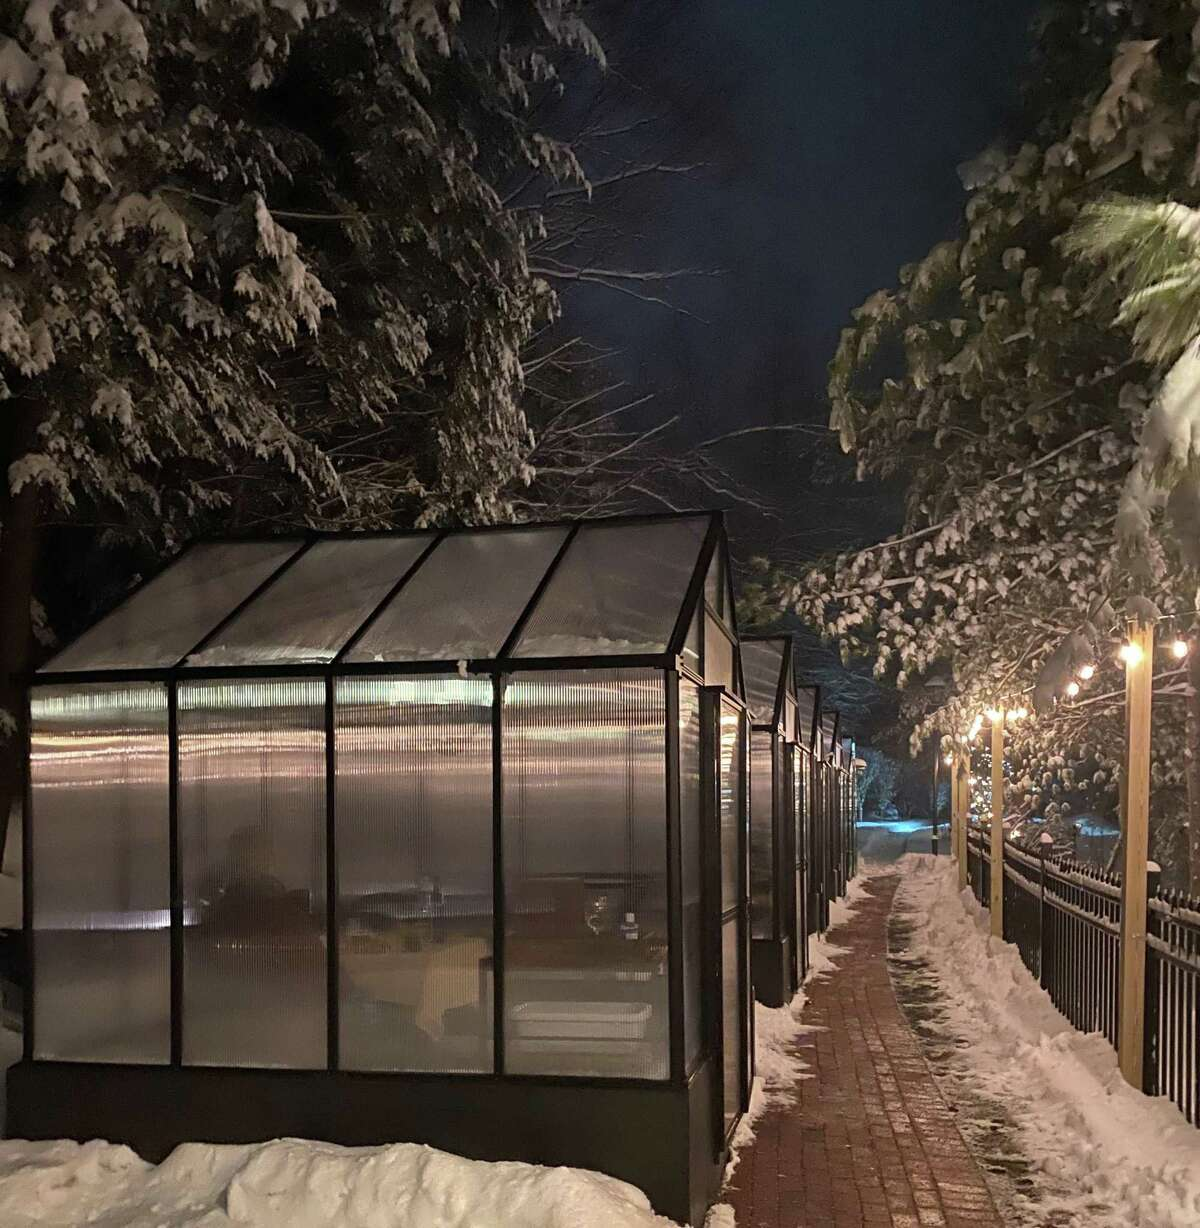 Greenhouse structures outside Millwright's Restaurant in Simsbury